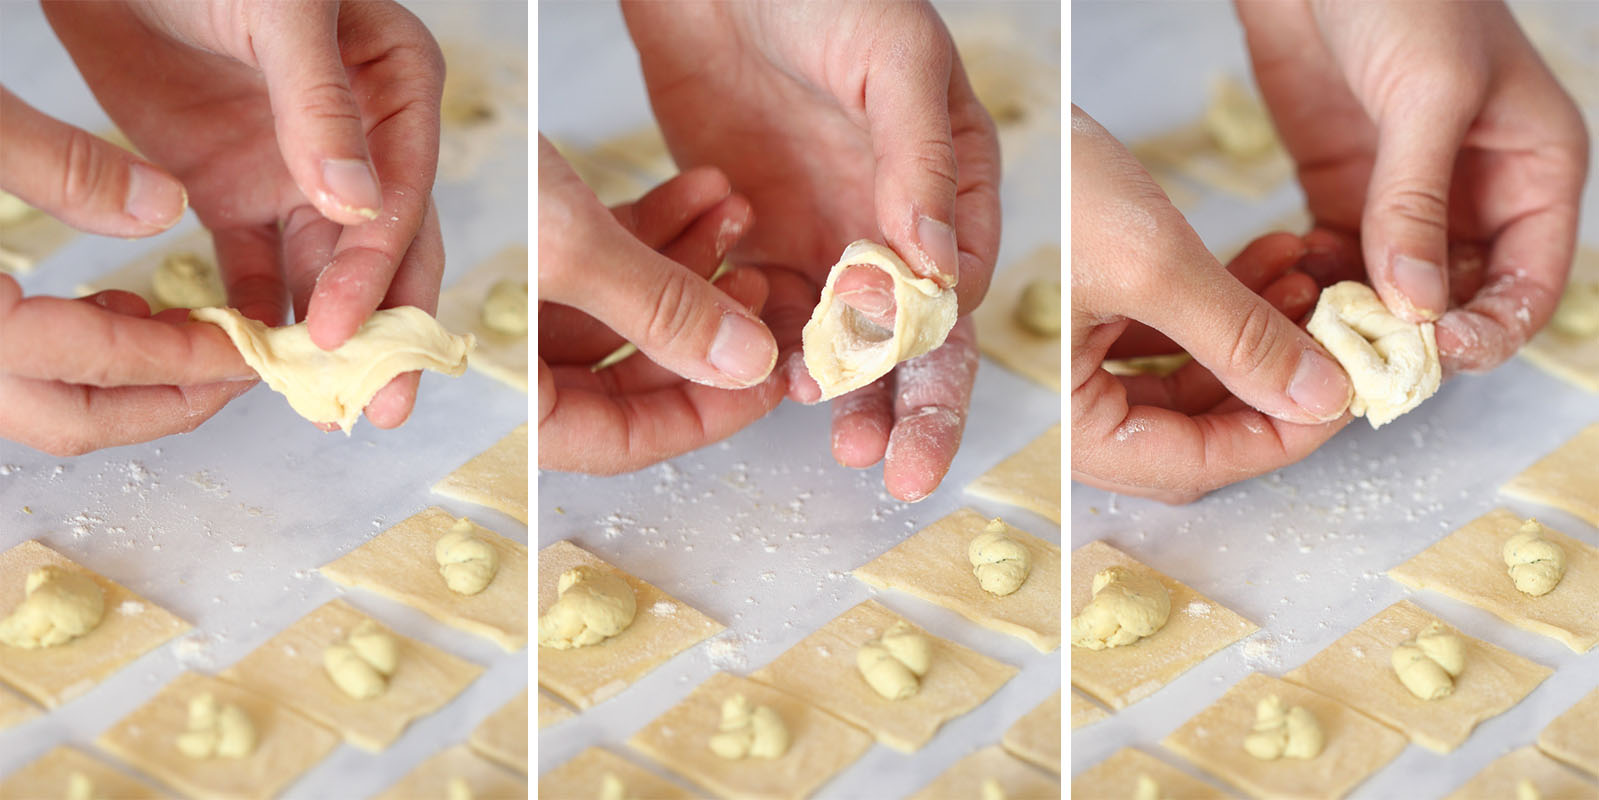 Vegan Tortellini by Pasta-based. A three-in-one photo showing the process of folding tortellini. First, fold the square diagonally. Then, fold two corners over your finger and press to seal. Lastly, fold the remaining corner back and down.